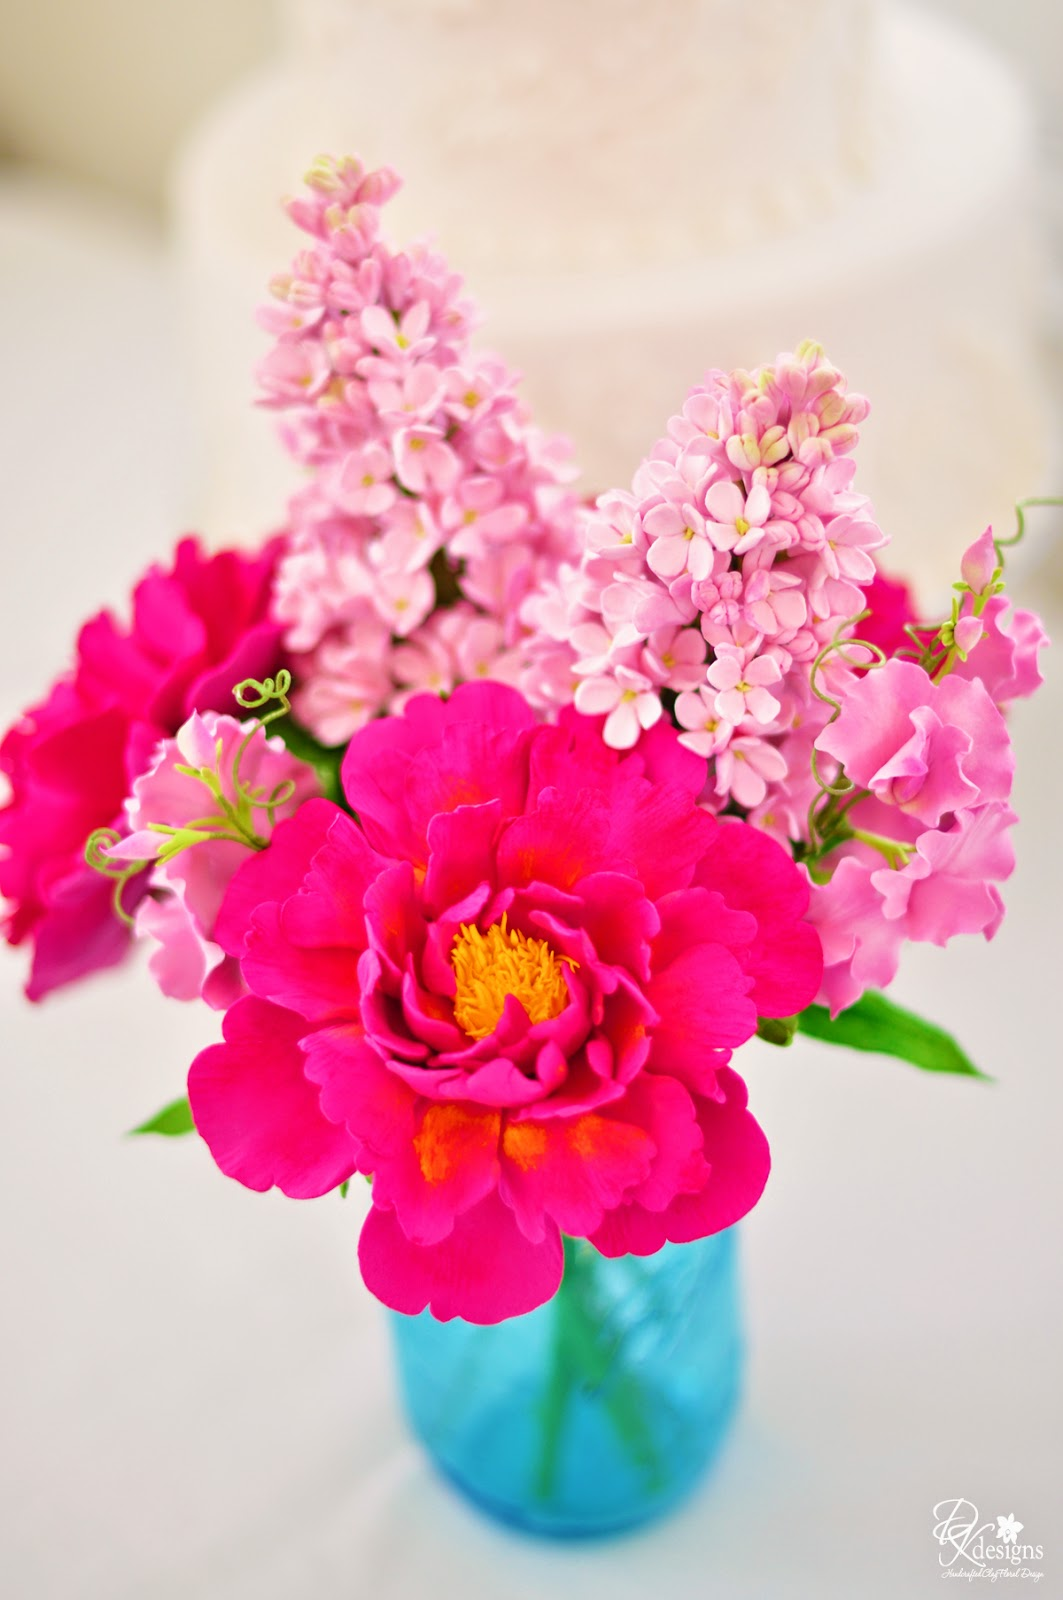 this arrangement definitely gets you ready for spring